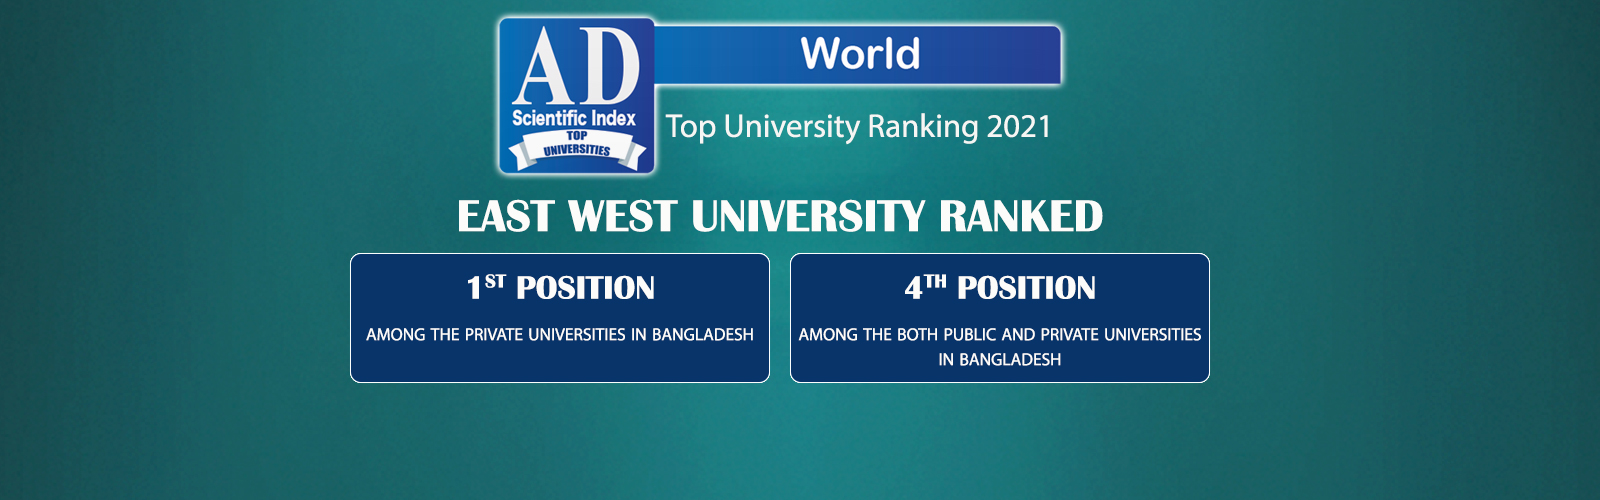 East West University is the Top Private University of Bangladesh in the 'AD Scientific Index' Rankin...